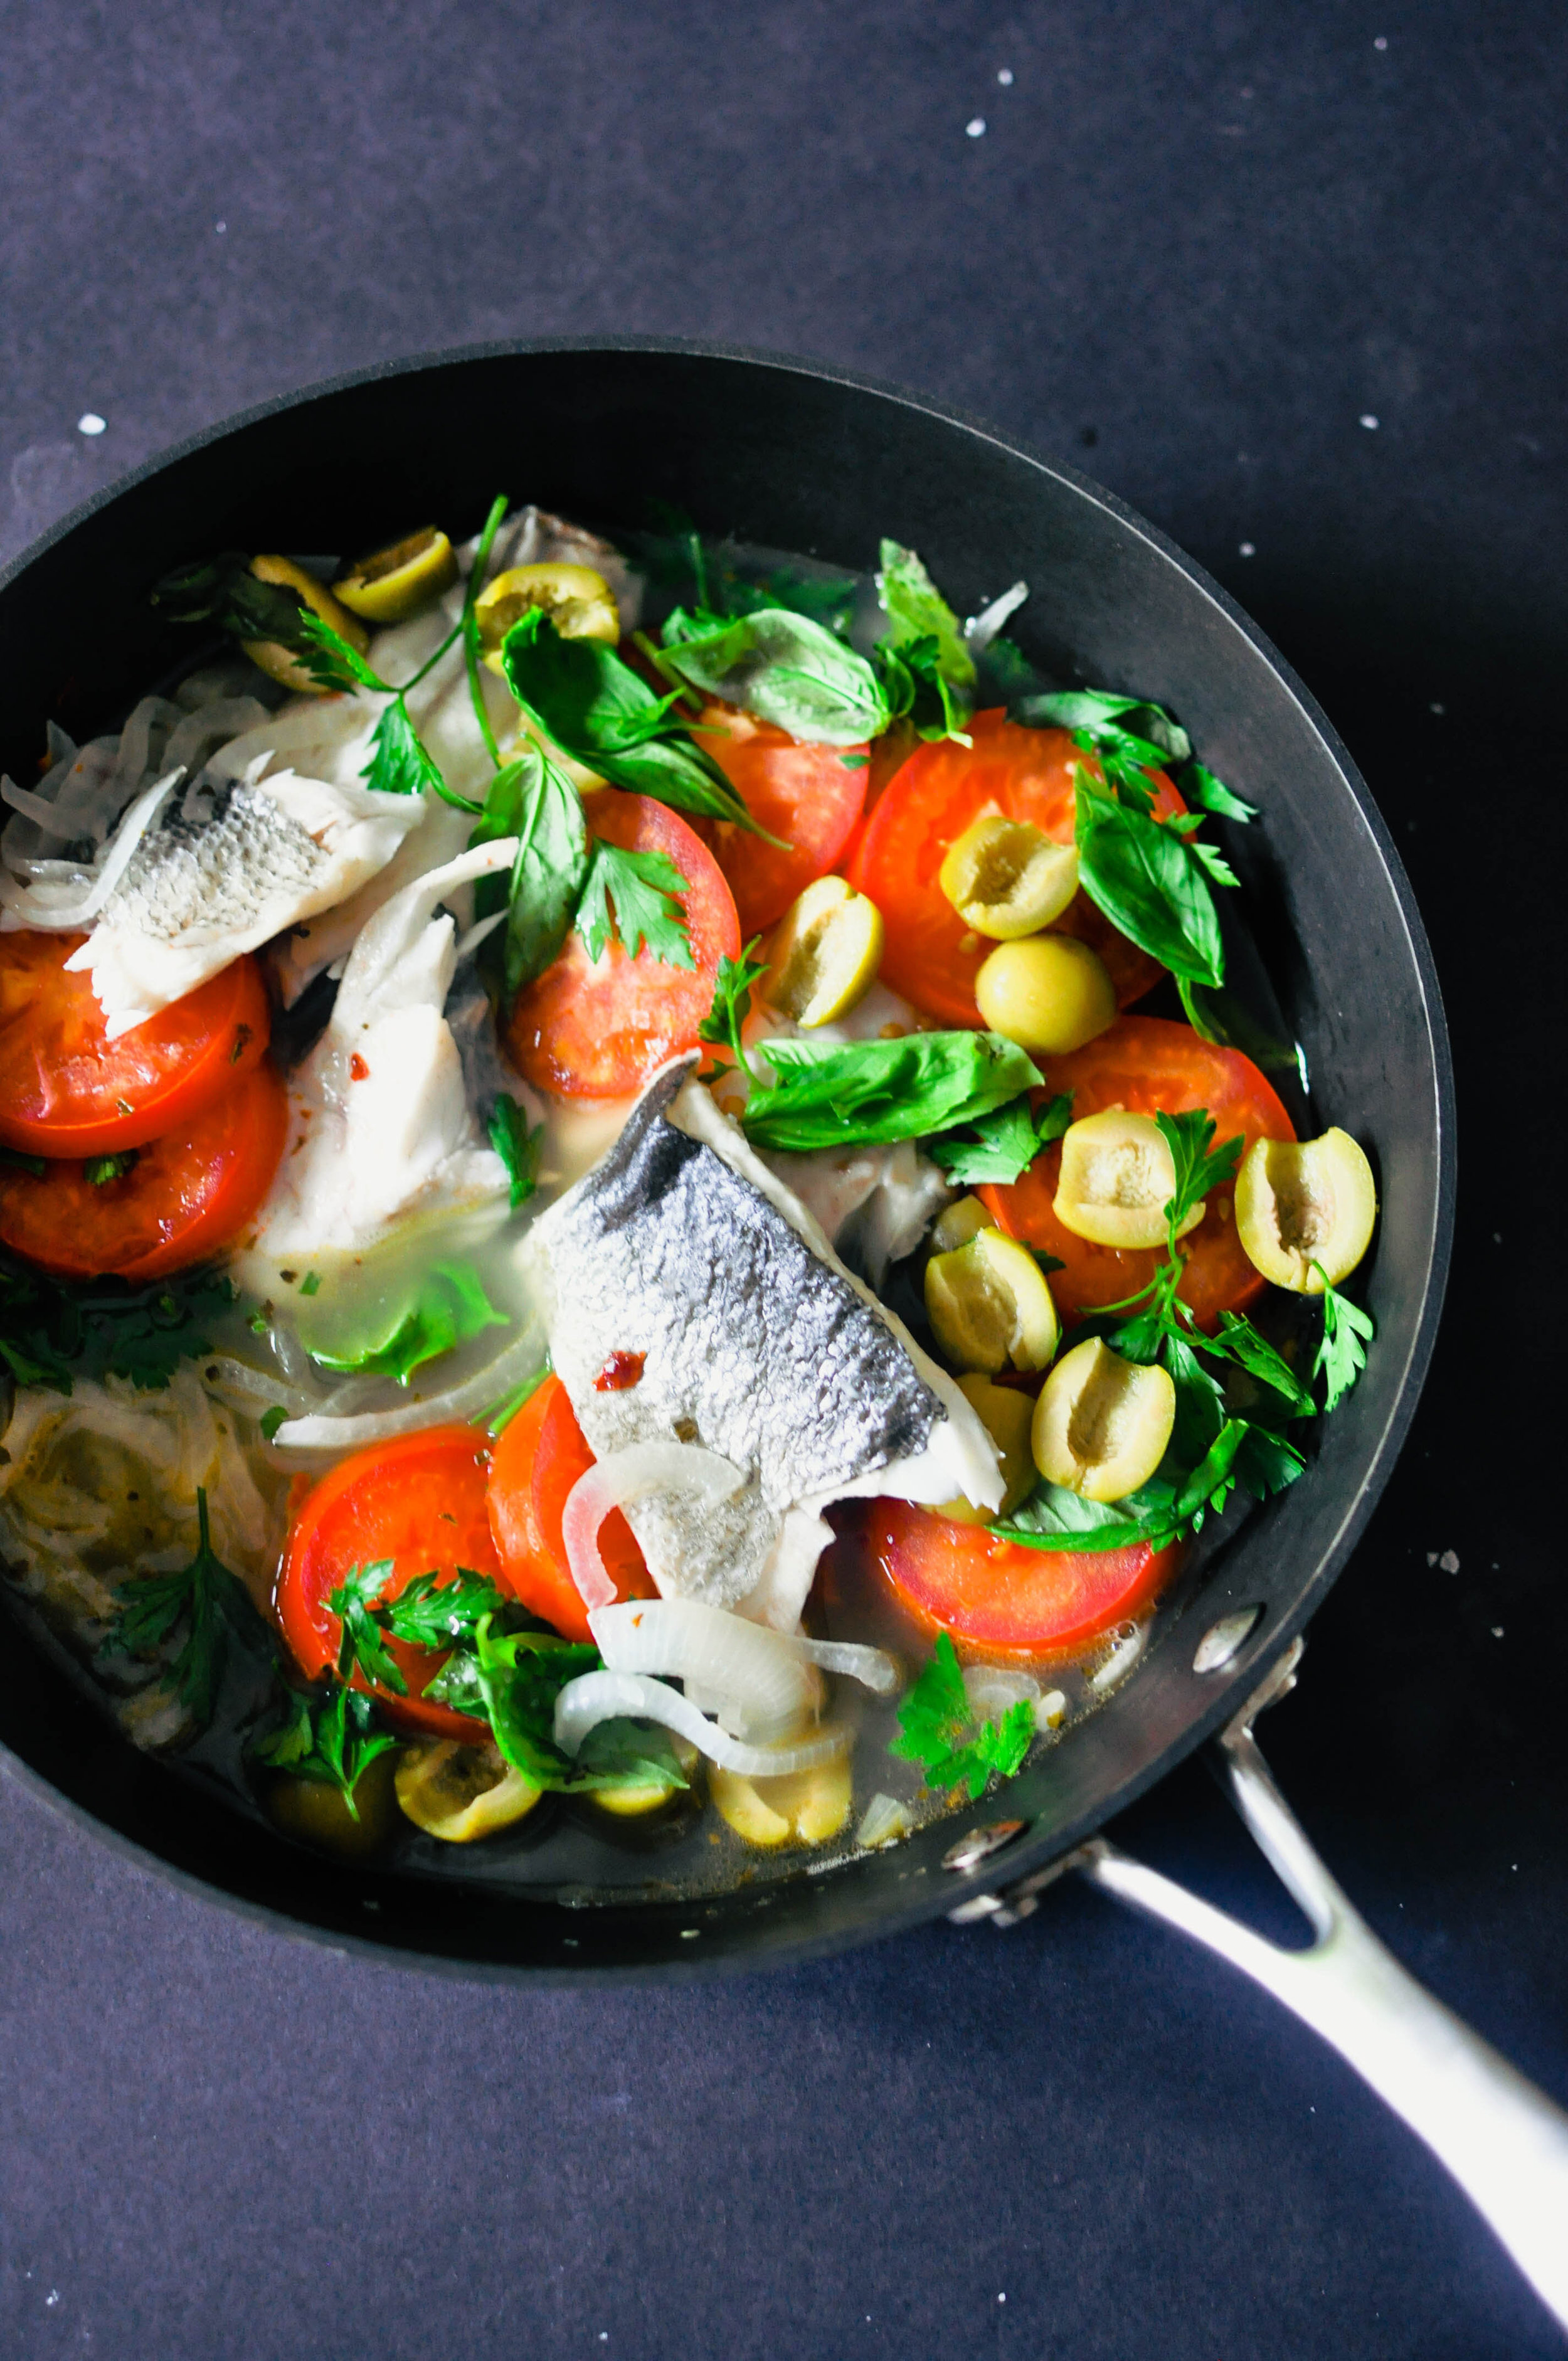 Poached Sea Bass - This poached sea bass recipe is one of my favorites! It's full of flavor - the delicate fish, the briny olives, the aromatic wine, and the fresh herbs all combine to make this an amazing meal.